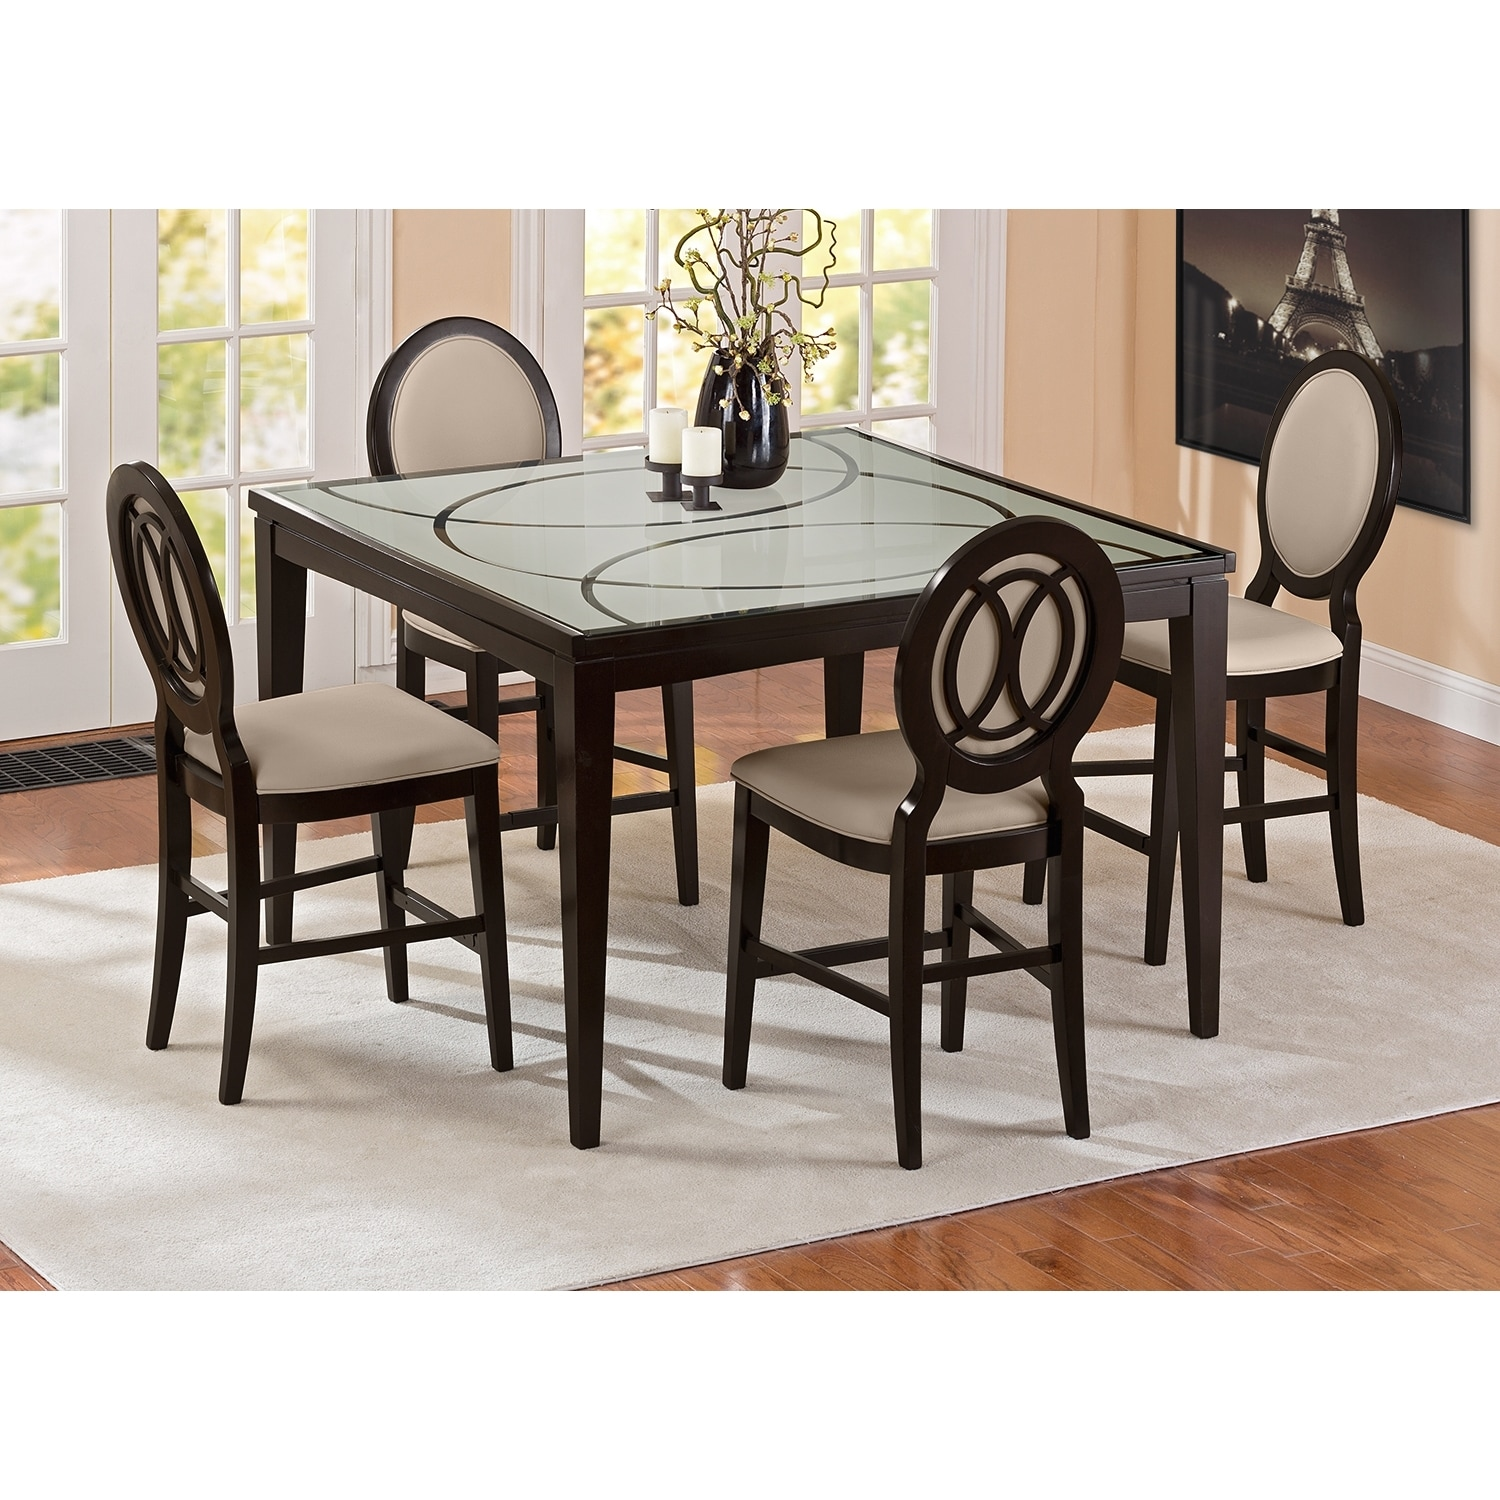 click to change image - Height Dining Room Table